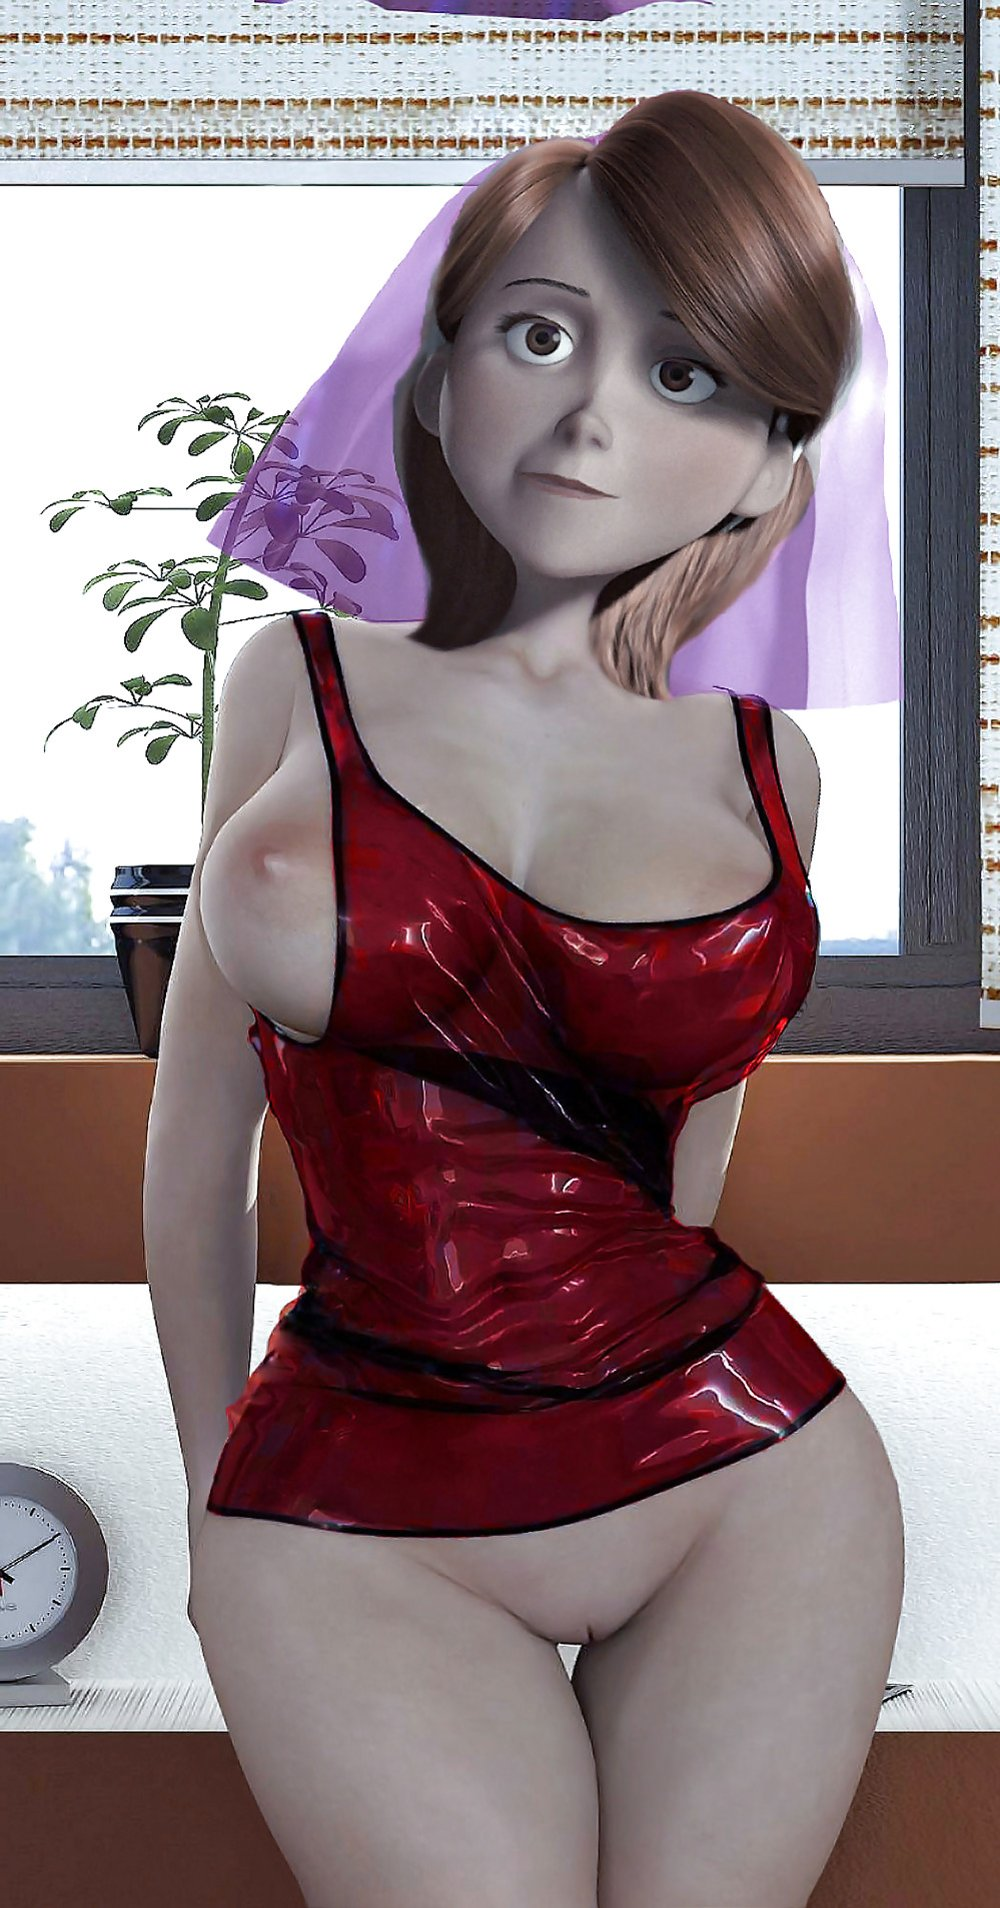 Helen Parr Biotch wifey of The Incredibles  ZB Porn